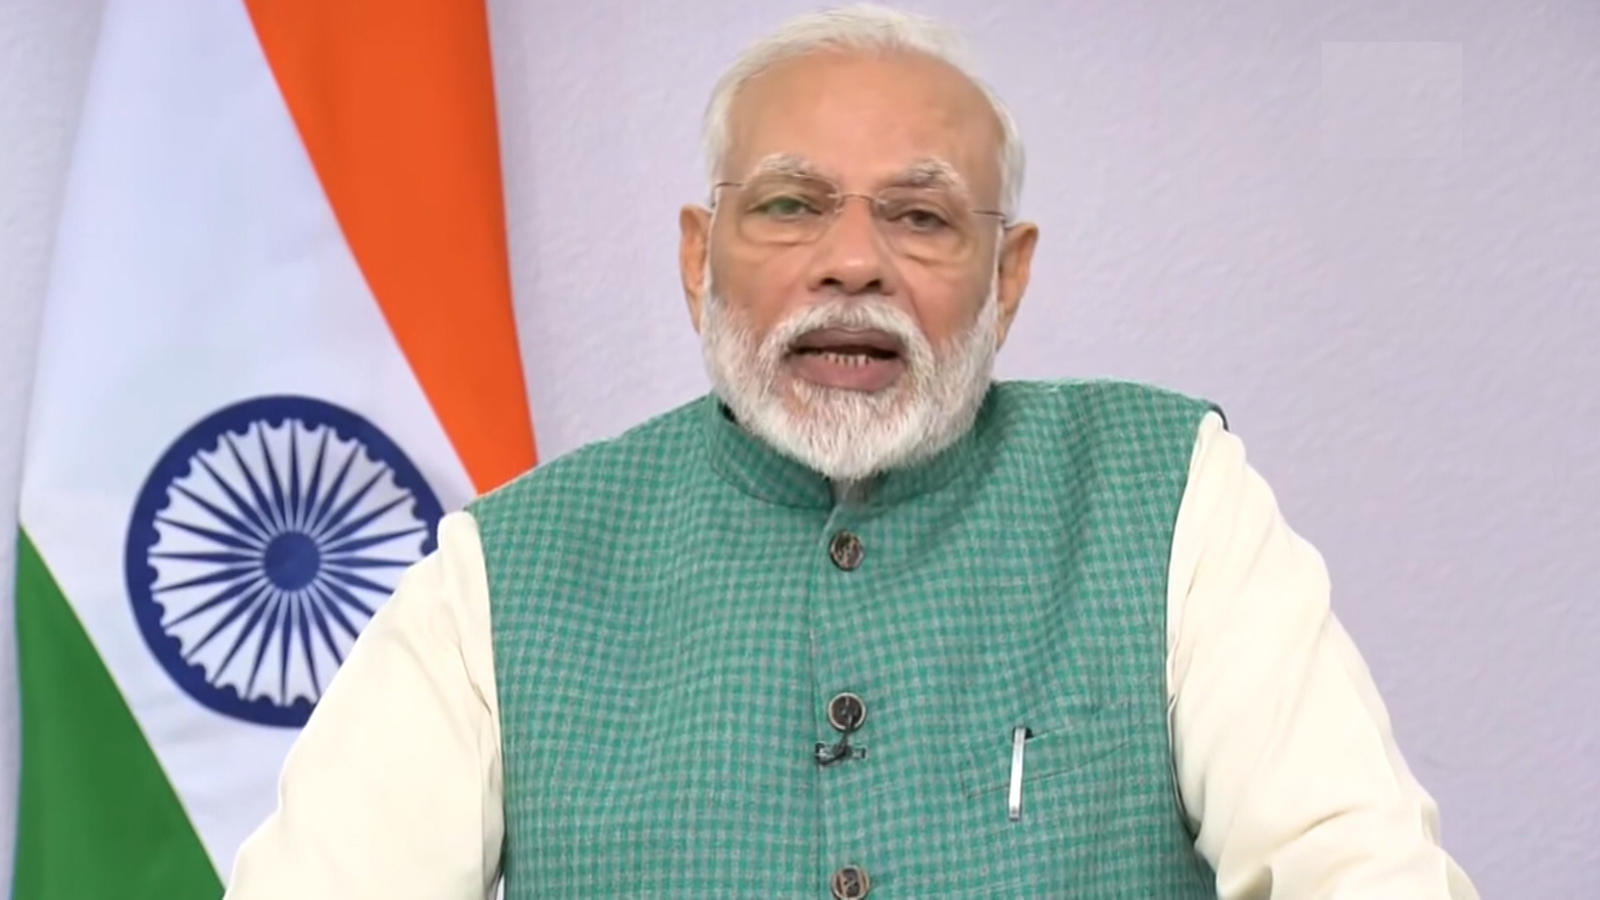 working-on-mantra-of-per-drop-more-crop-pm-modi-at-global-potato-conclave